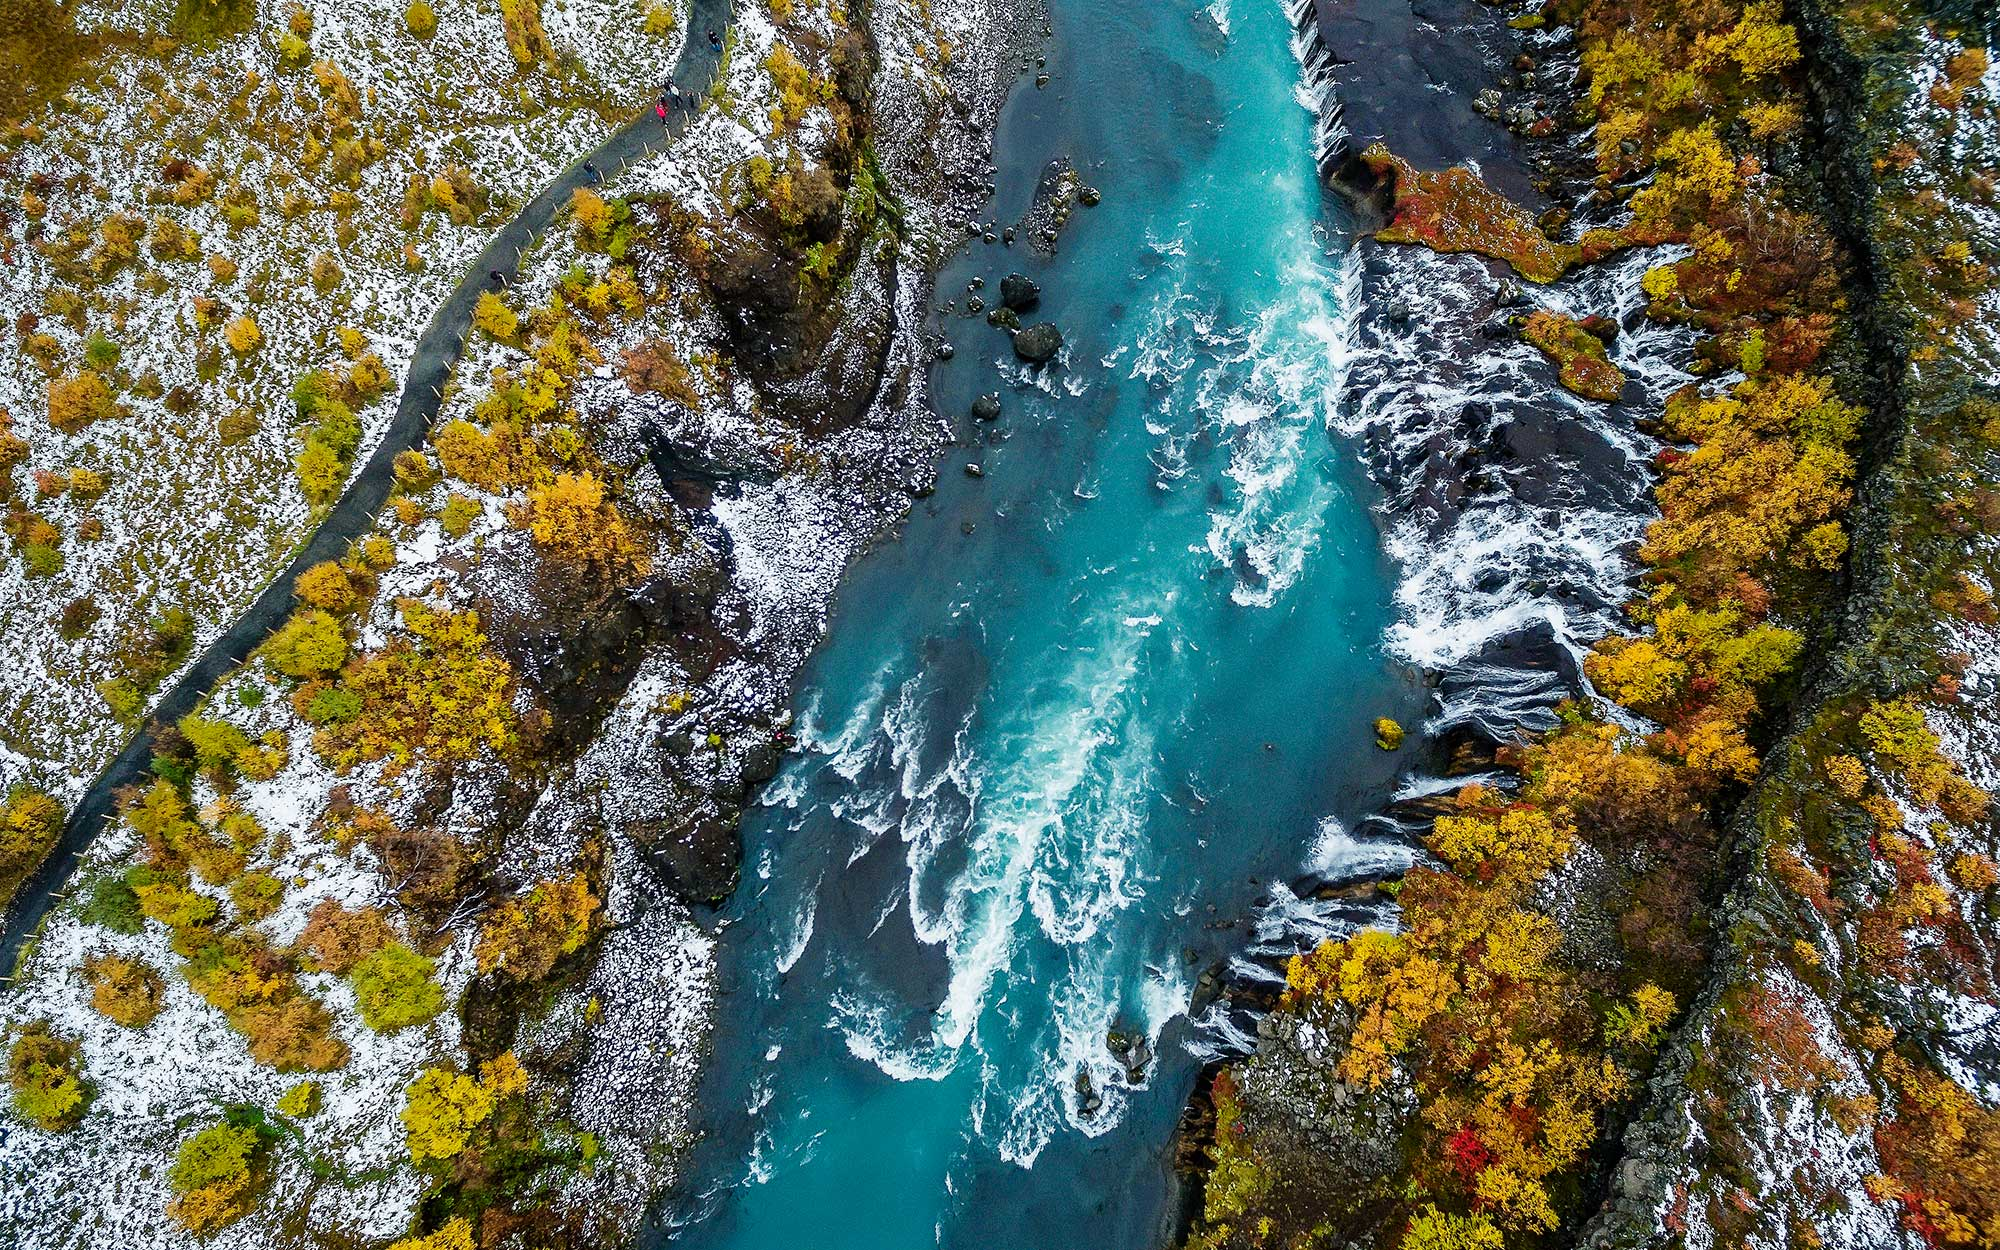 Iceland Drone Photos - Hraunfossar Waterfall